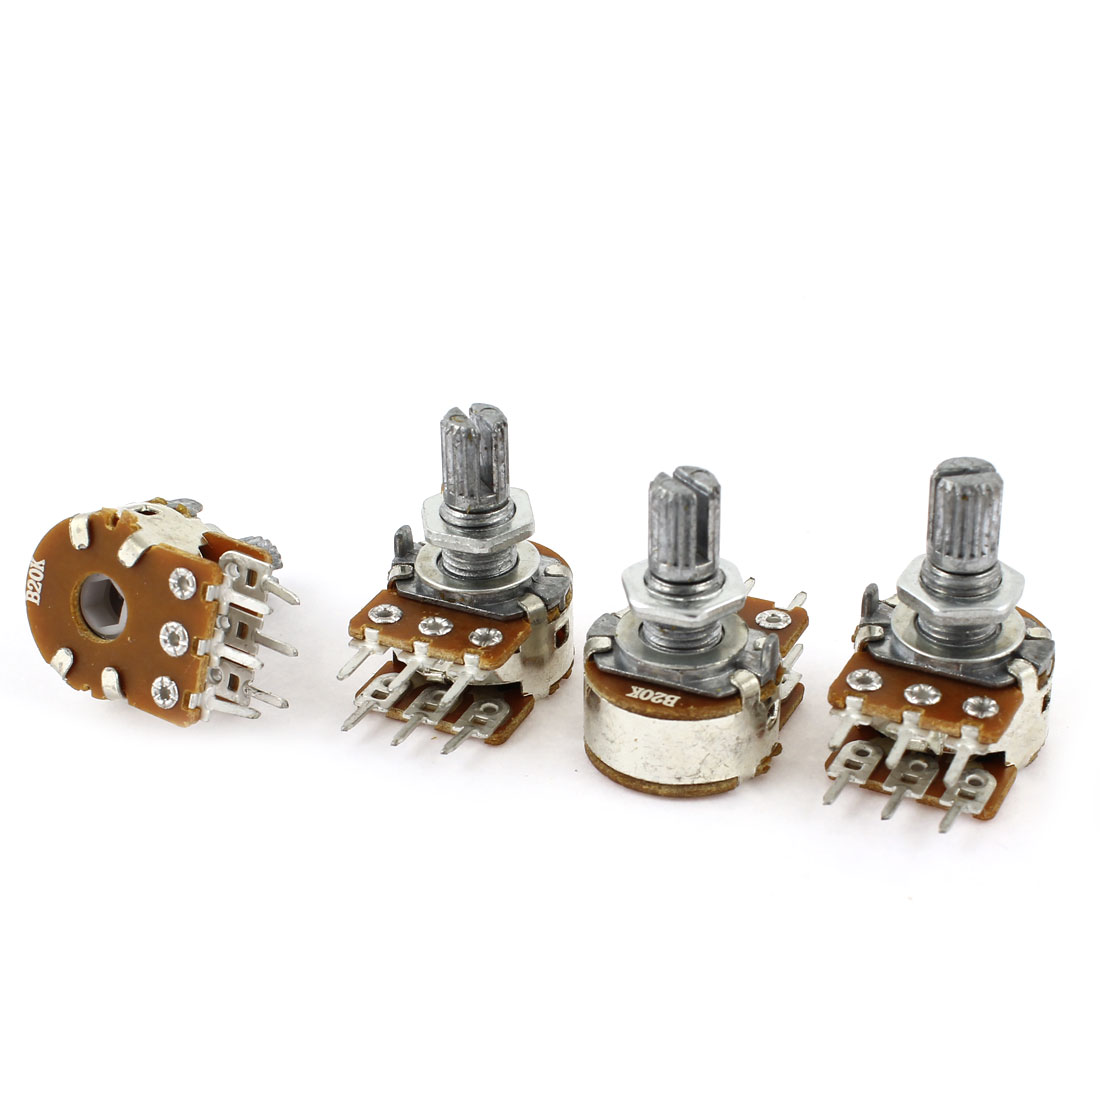 4Pcs 20K Ohm 15mm Shaft B Type Linear Dual Rotary Rotatable Taper Potentiometer